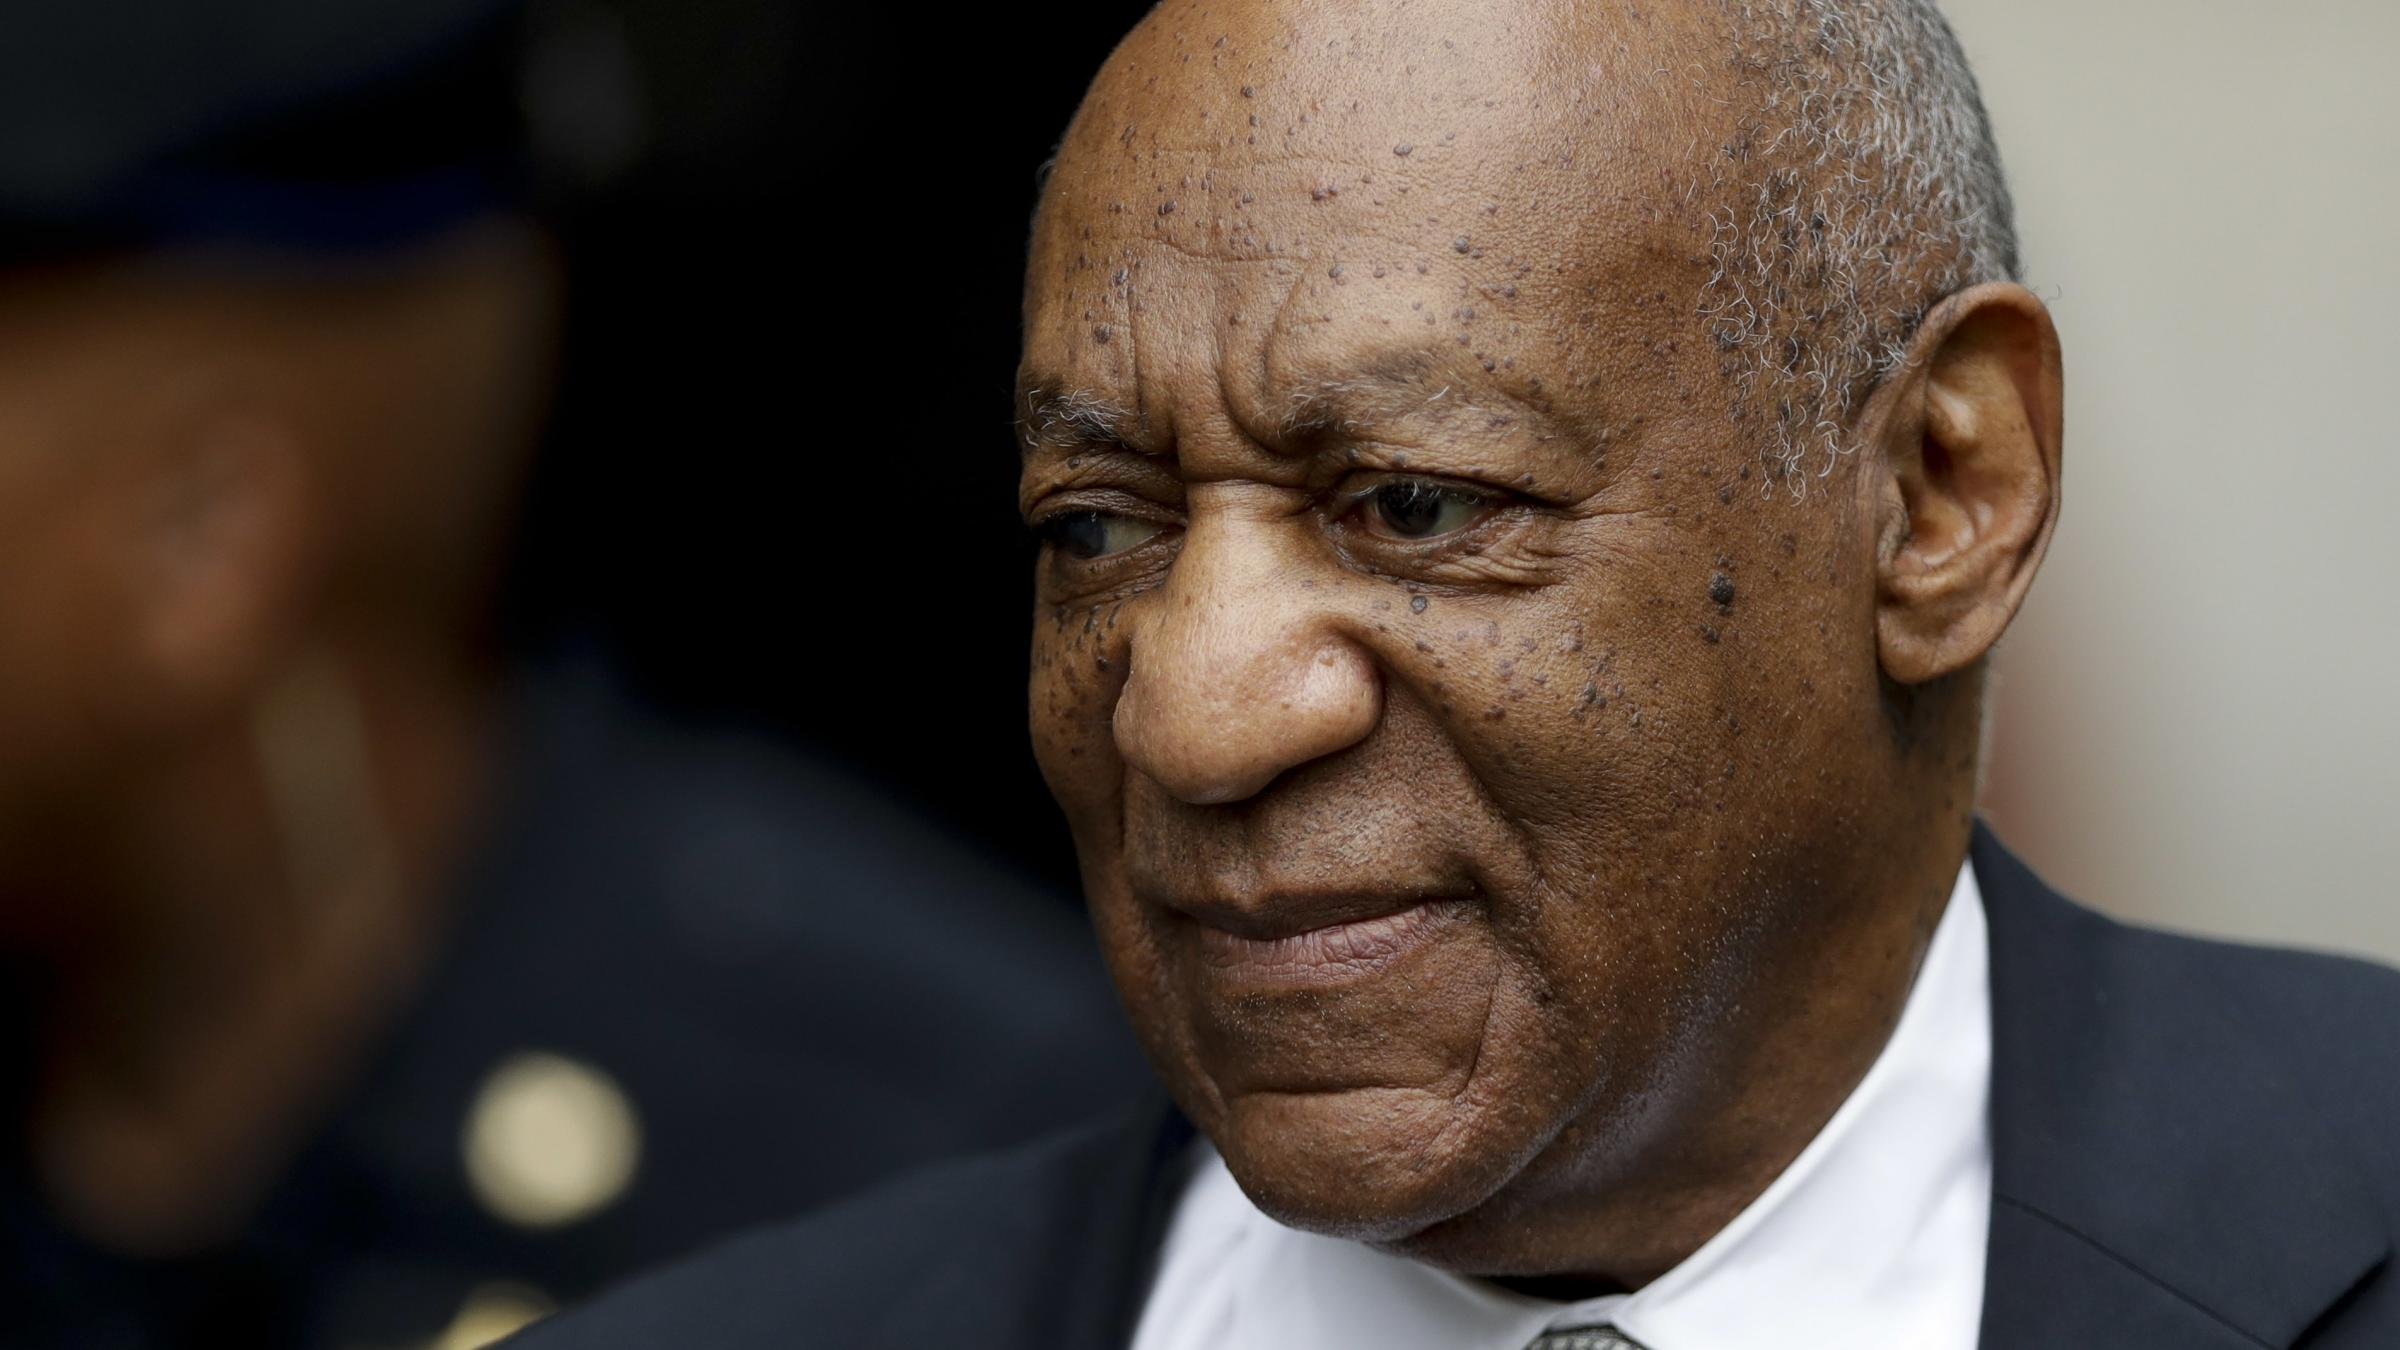 Mistrial in Cosby case; prosecutor will go to trial again